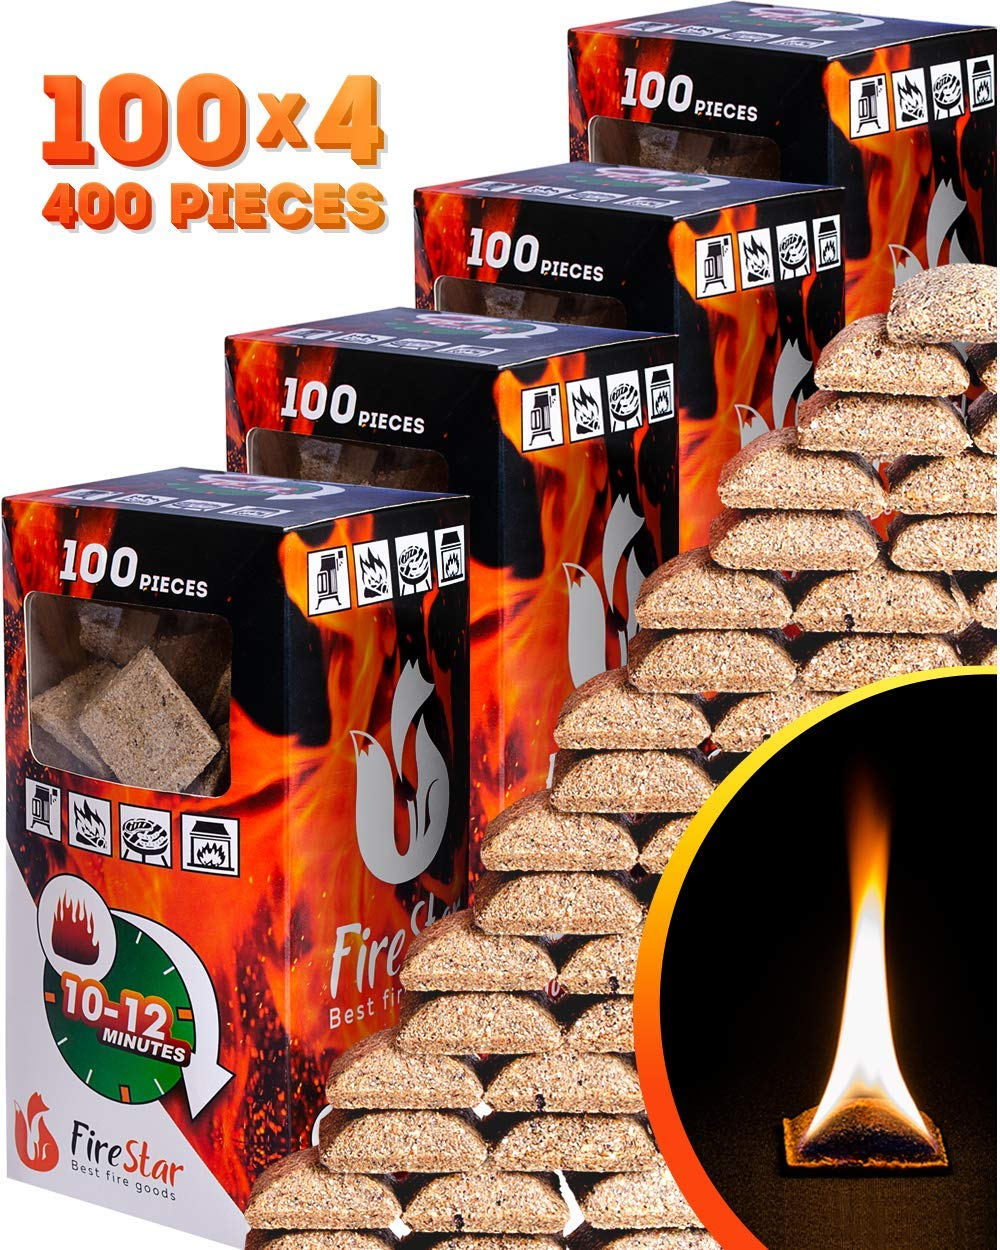 Fire Starter Squares - 100pc fire starters for fireplace - Camping fire lighter - Grill charcoal starter cubes - Firestarters for campfires   fireplace   fire pit burns 10-12 min